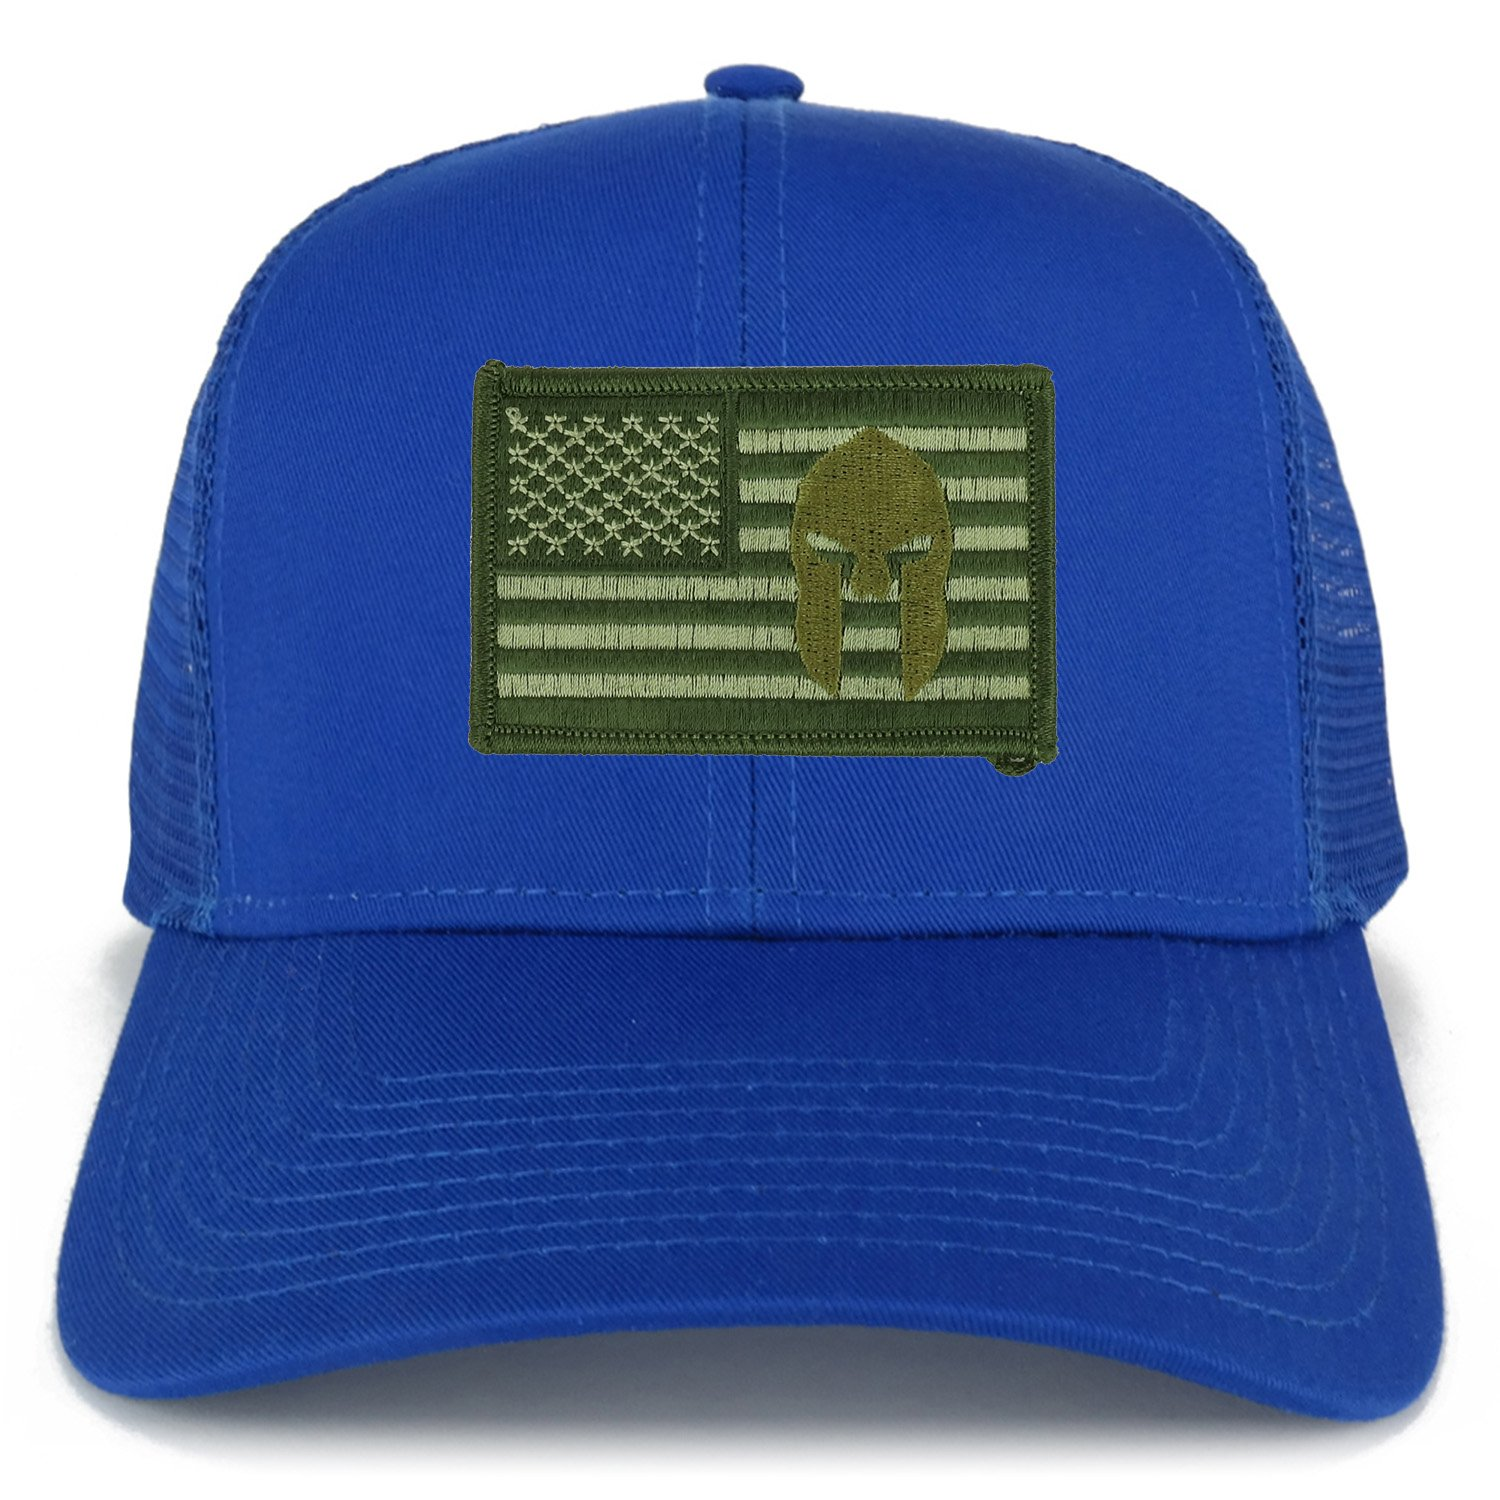 Armycrew Olive USA Flag Spartan Embroidered Patch Snapback Mesh Trucker Cap  - Black at Amazon Men s Clothing store  a8f9c10e5c5